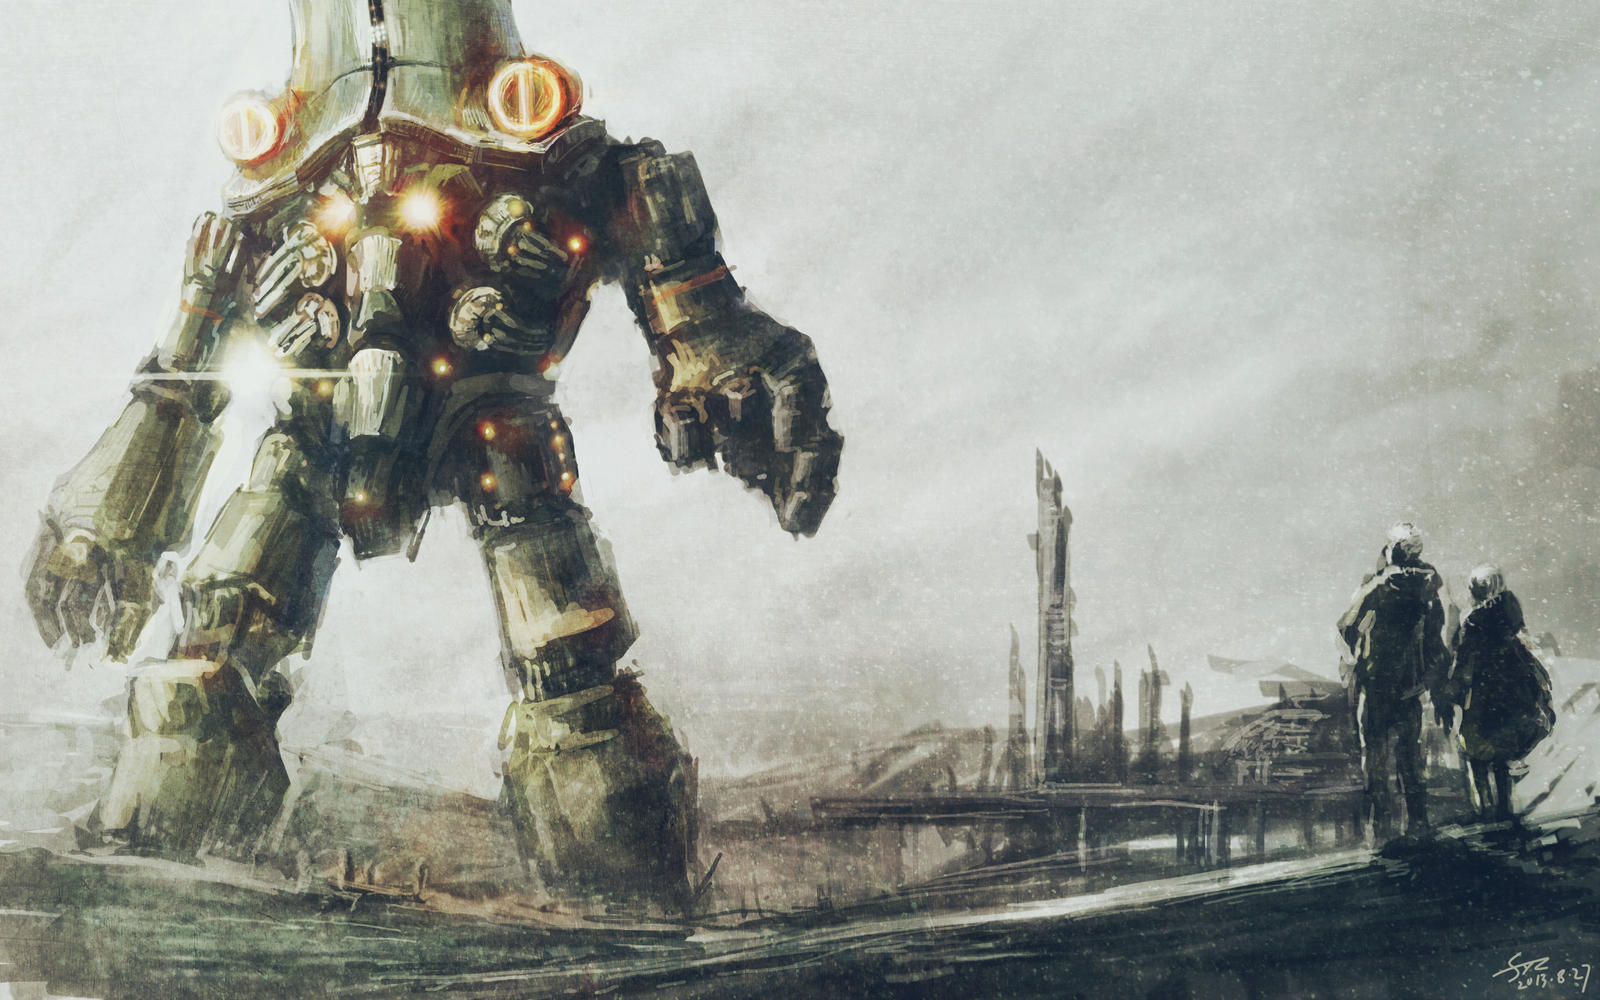 Pacific Rim-Cherno Alpha by flyYZ on DeviantArt